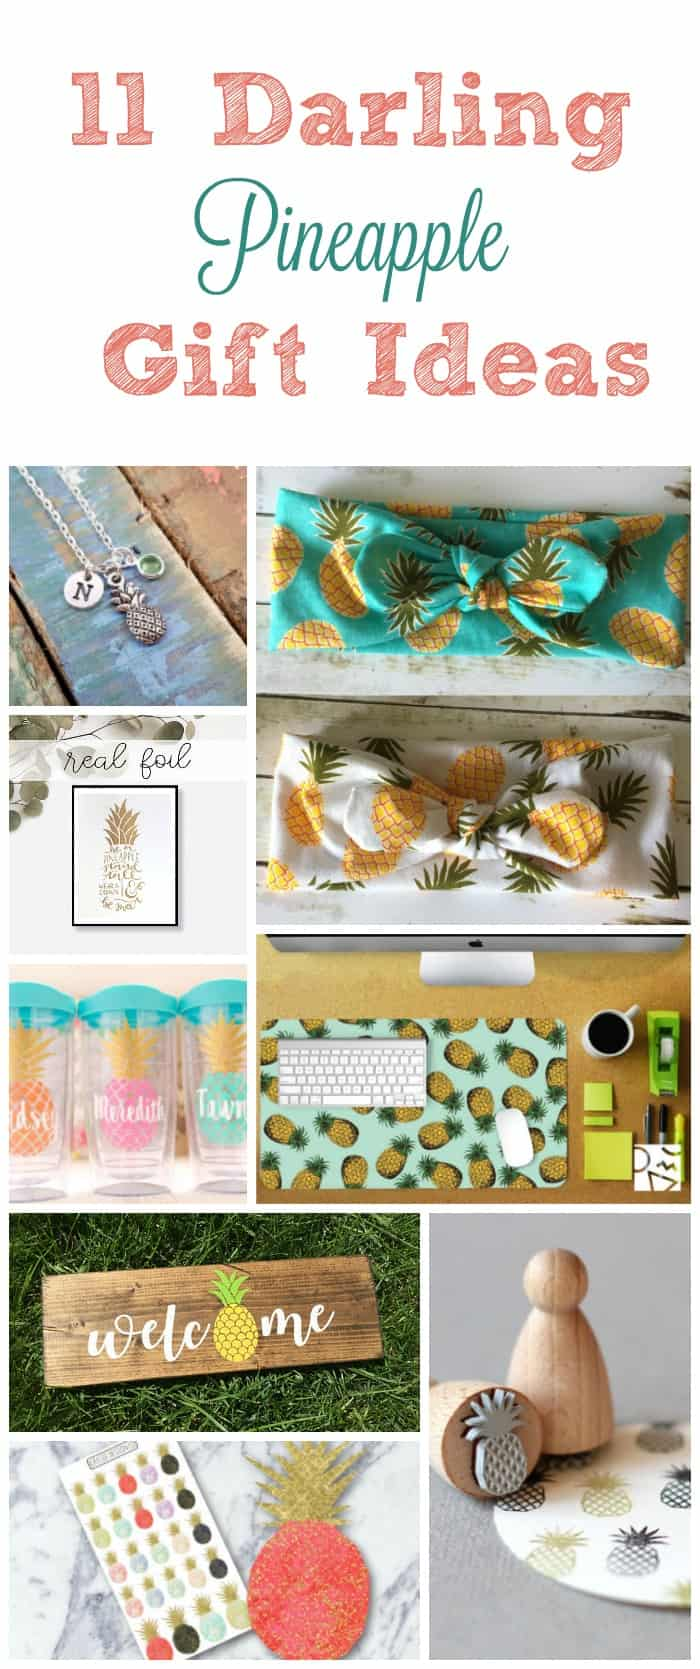 Love pineapples? Like REALLY love them? Why not show off your adoration with some of these insanely cute pineapple gift ideas on Etsy?